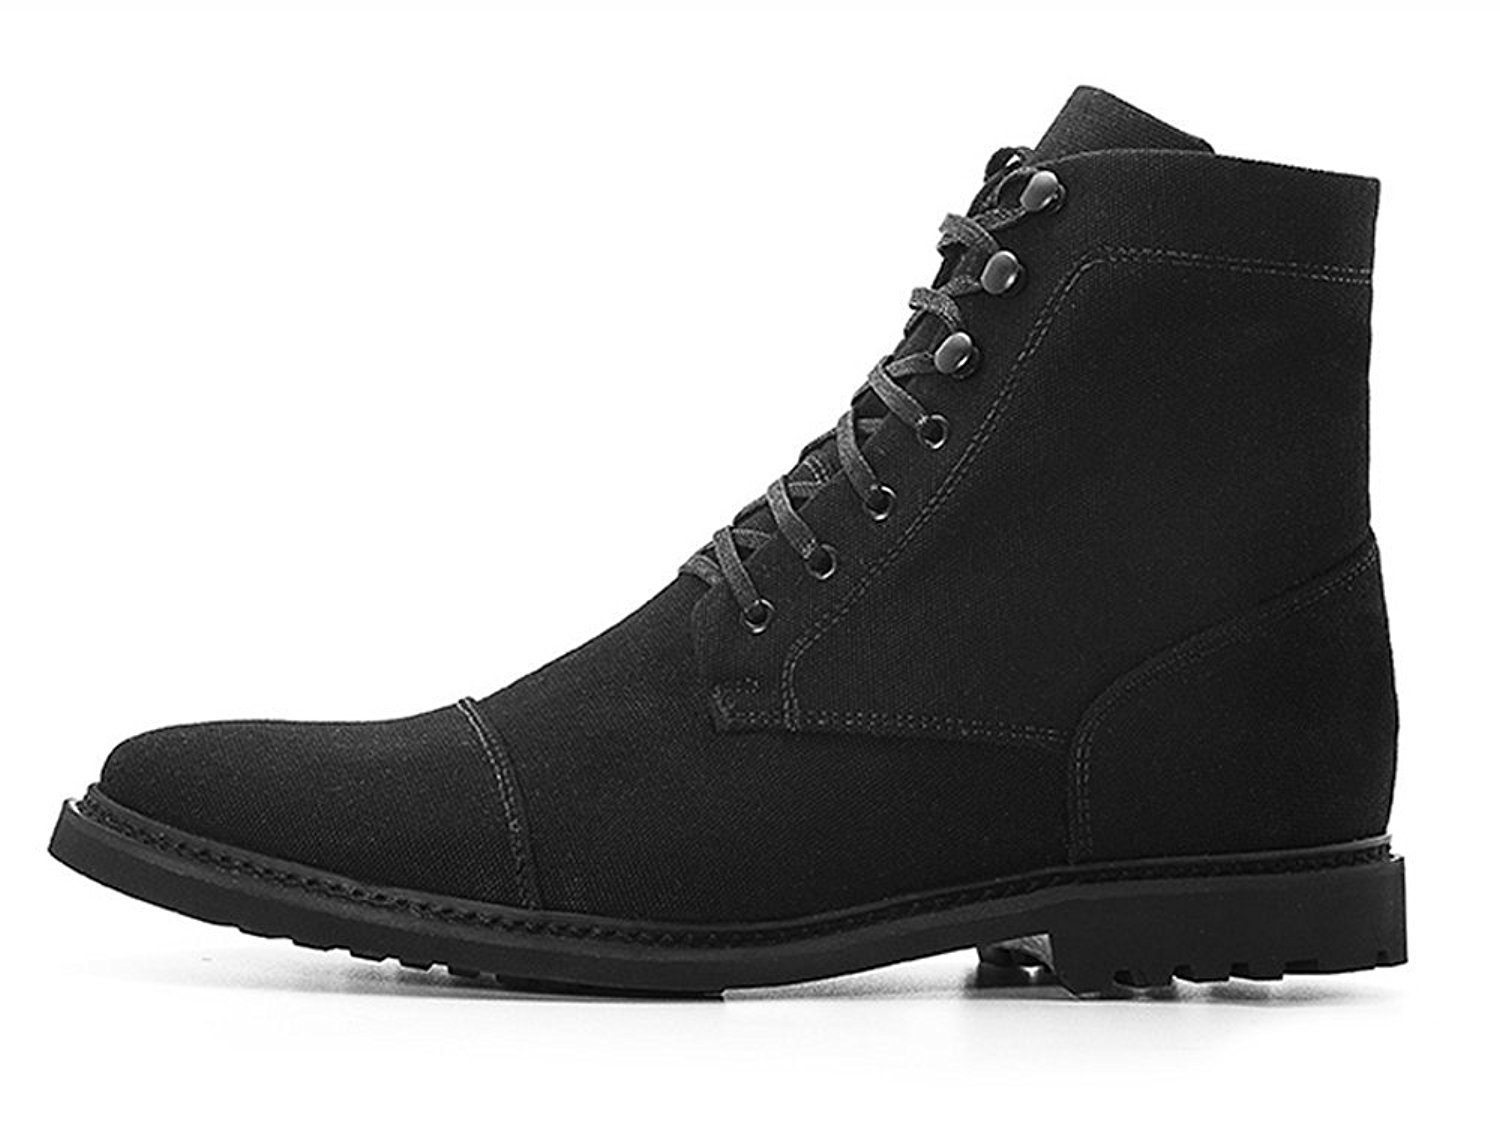 Top 6 Vegan Men S Work Boots Of 2018 Vegan Men Shoes